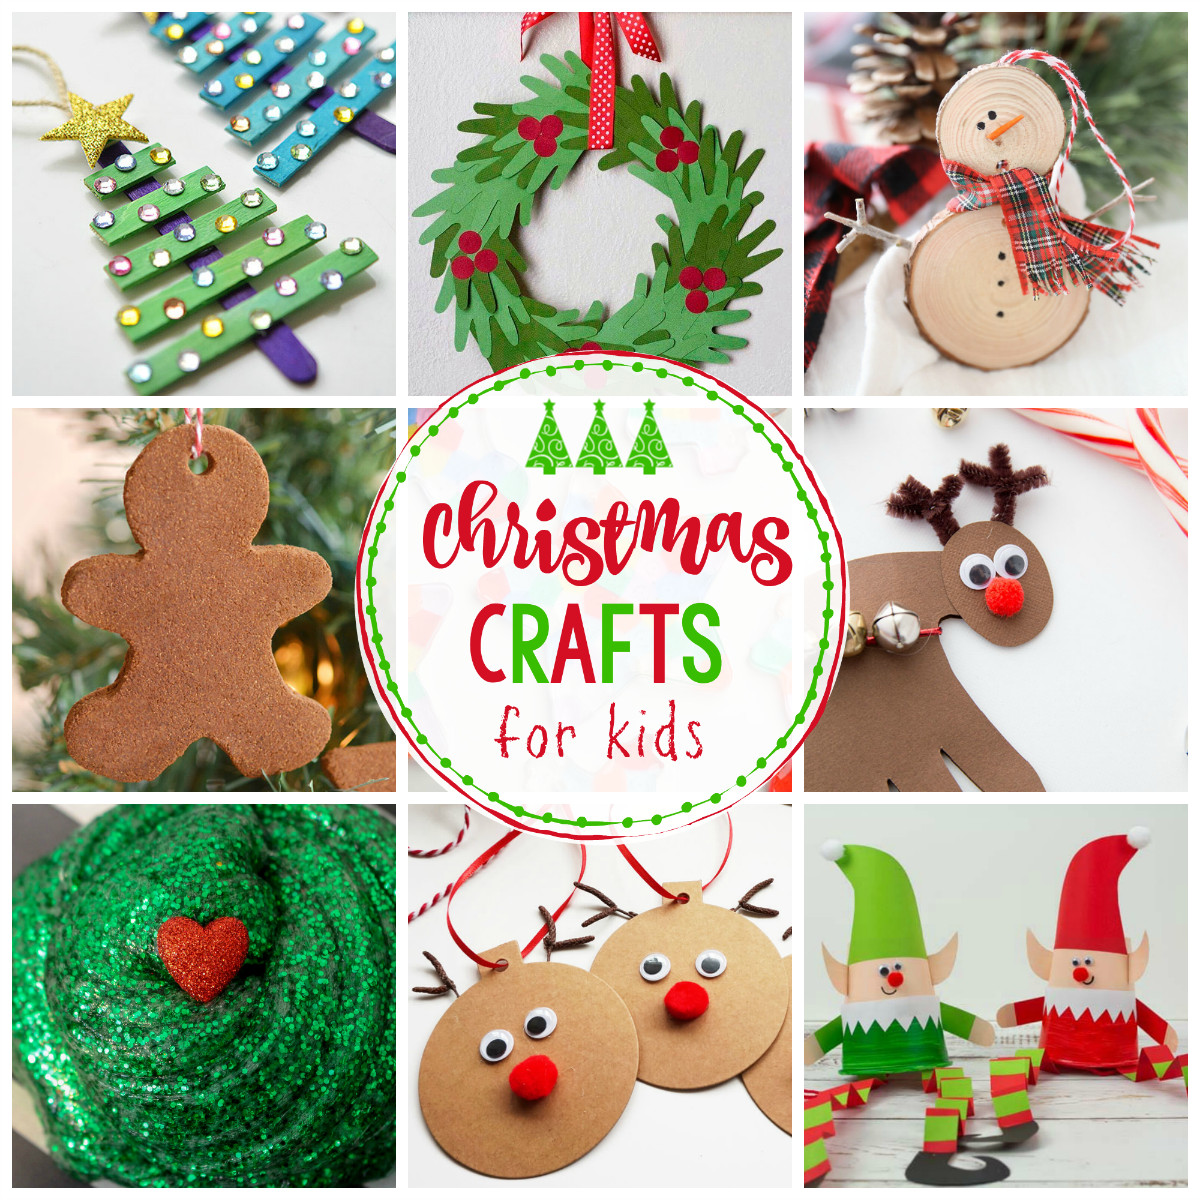 Crafts For Little Kids  25 Easy Christmas Crafts for Kids Crazy Little Projects